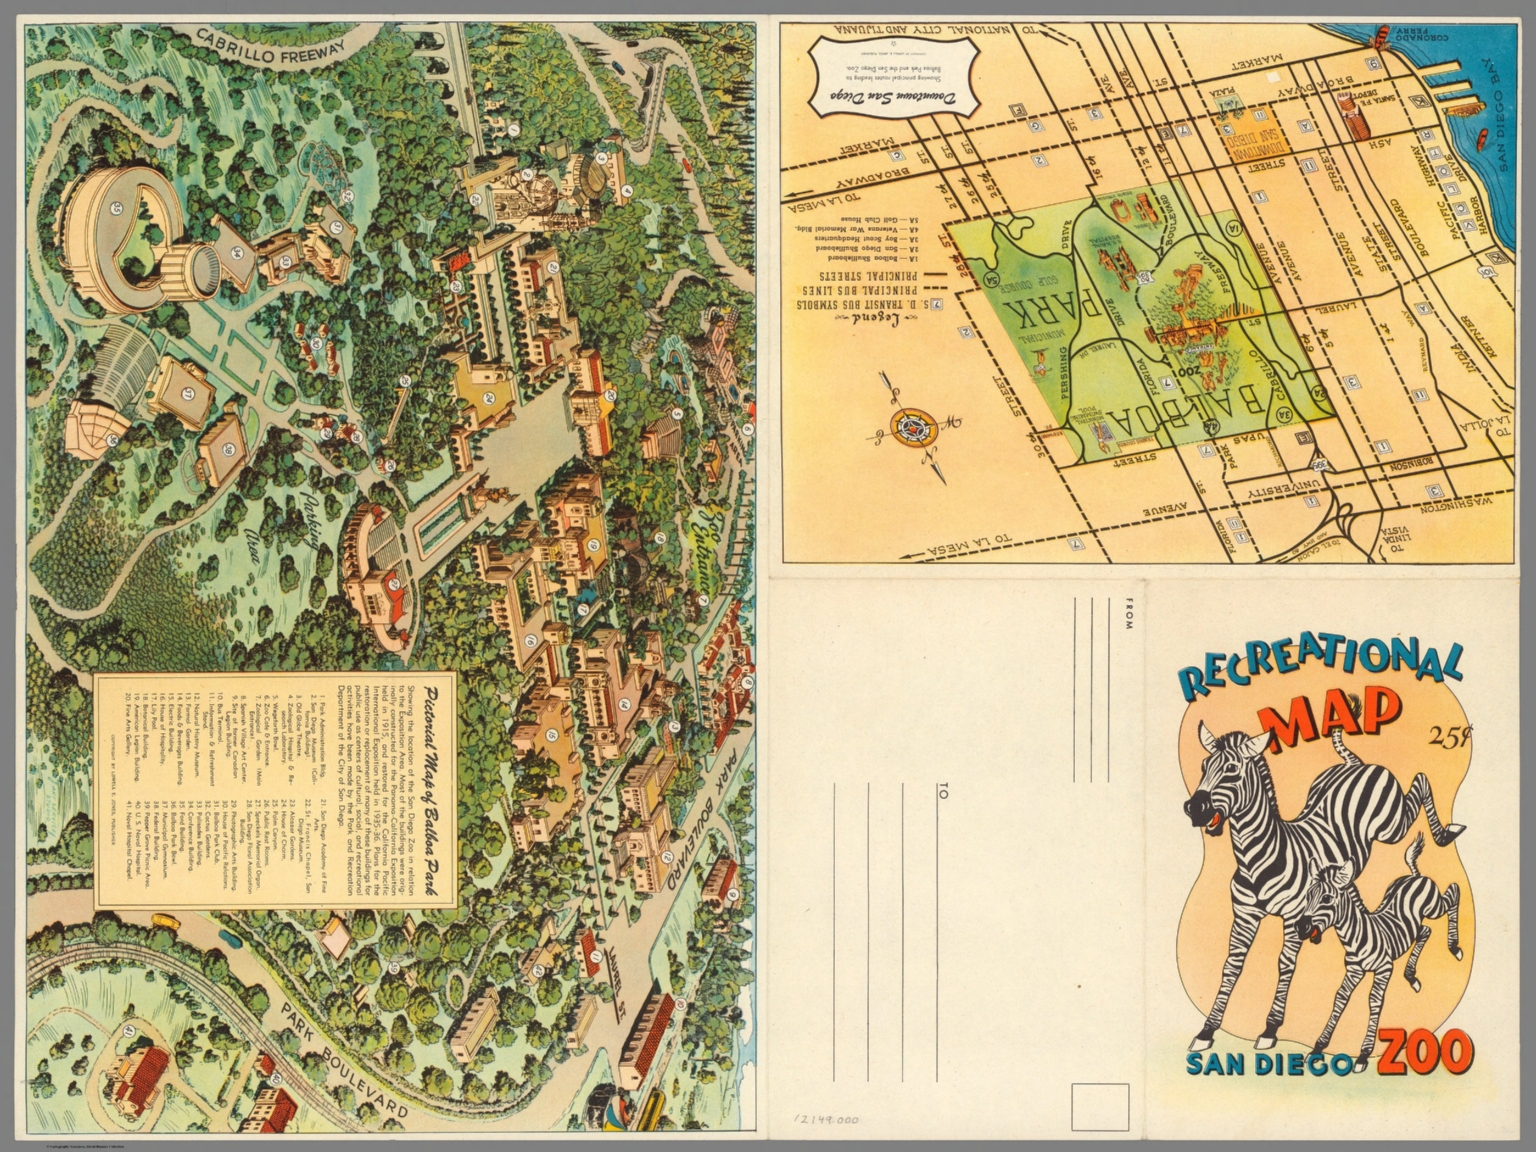 Covers Recreational Map San Diego Zoo Downtown San Diego - San diego zoo map